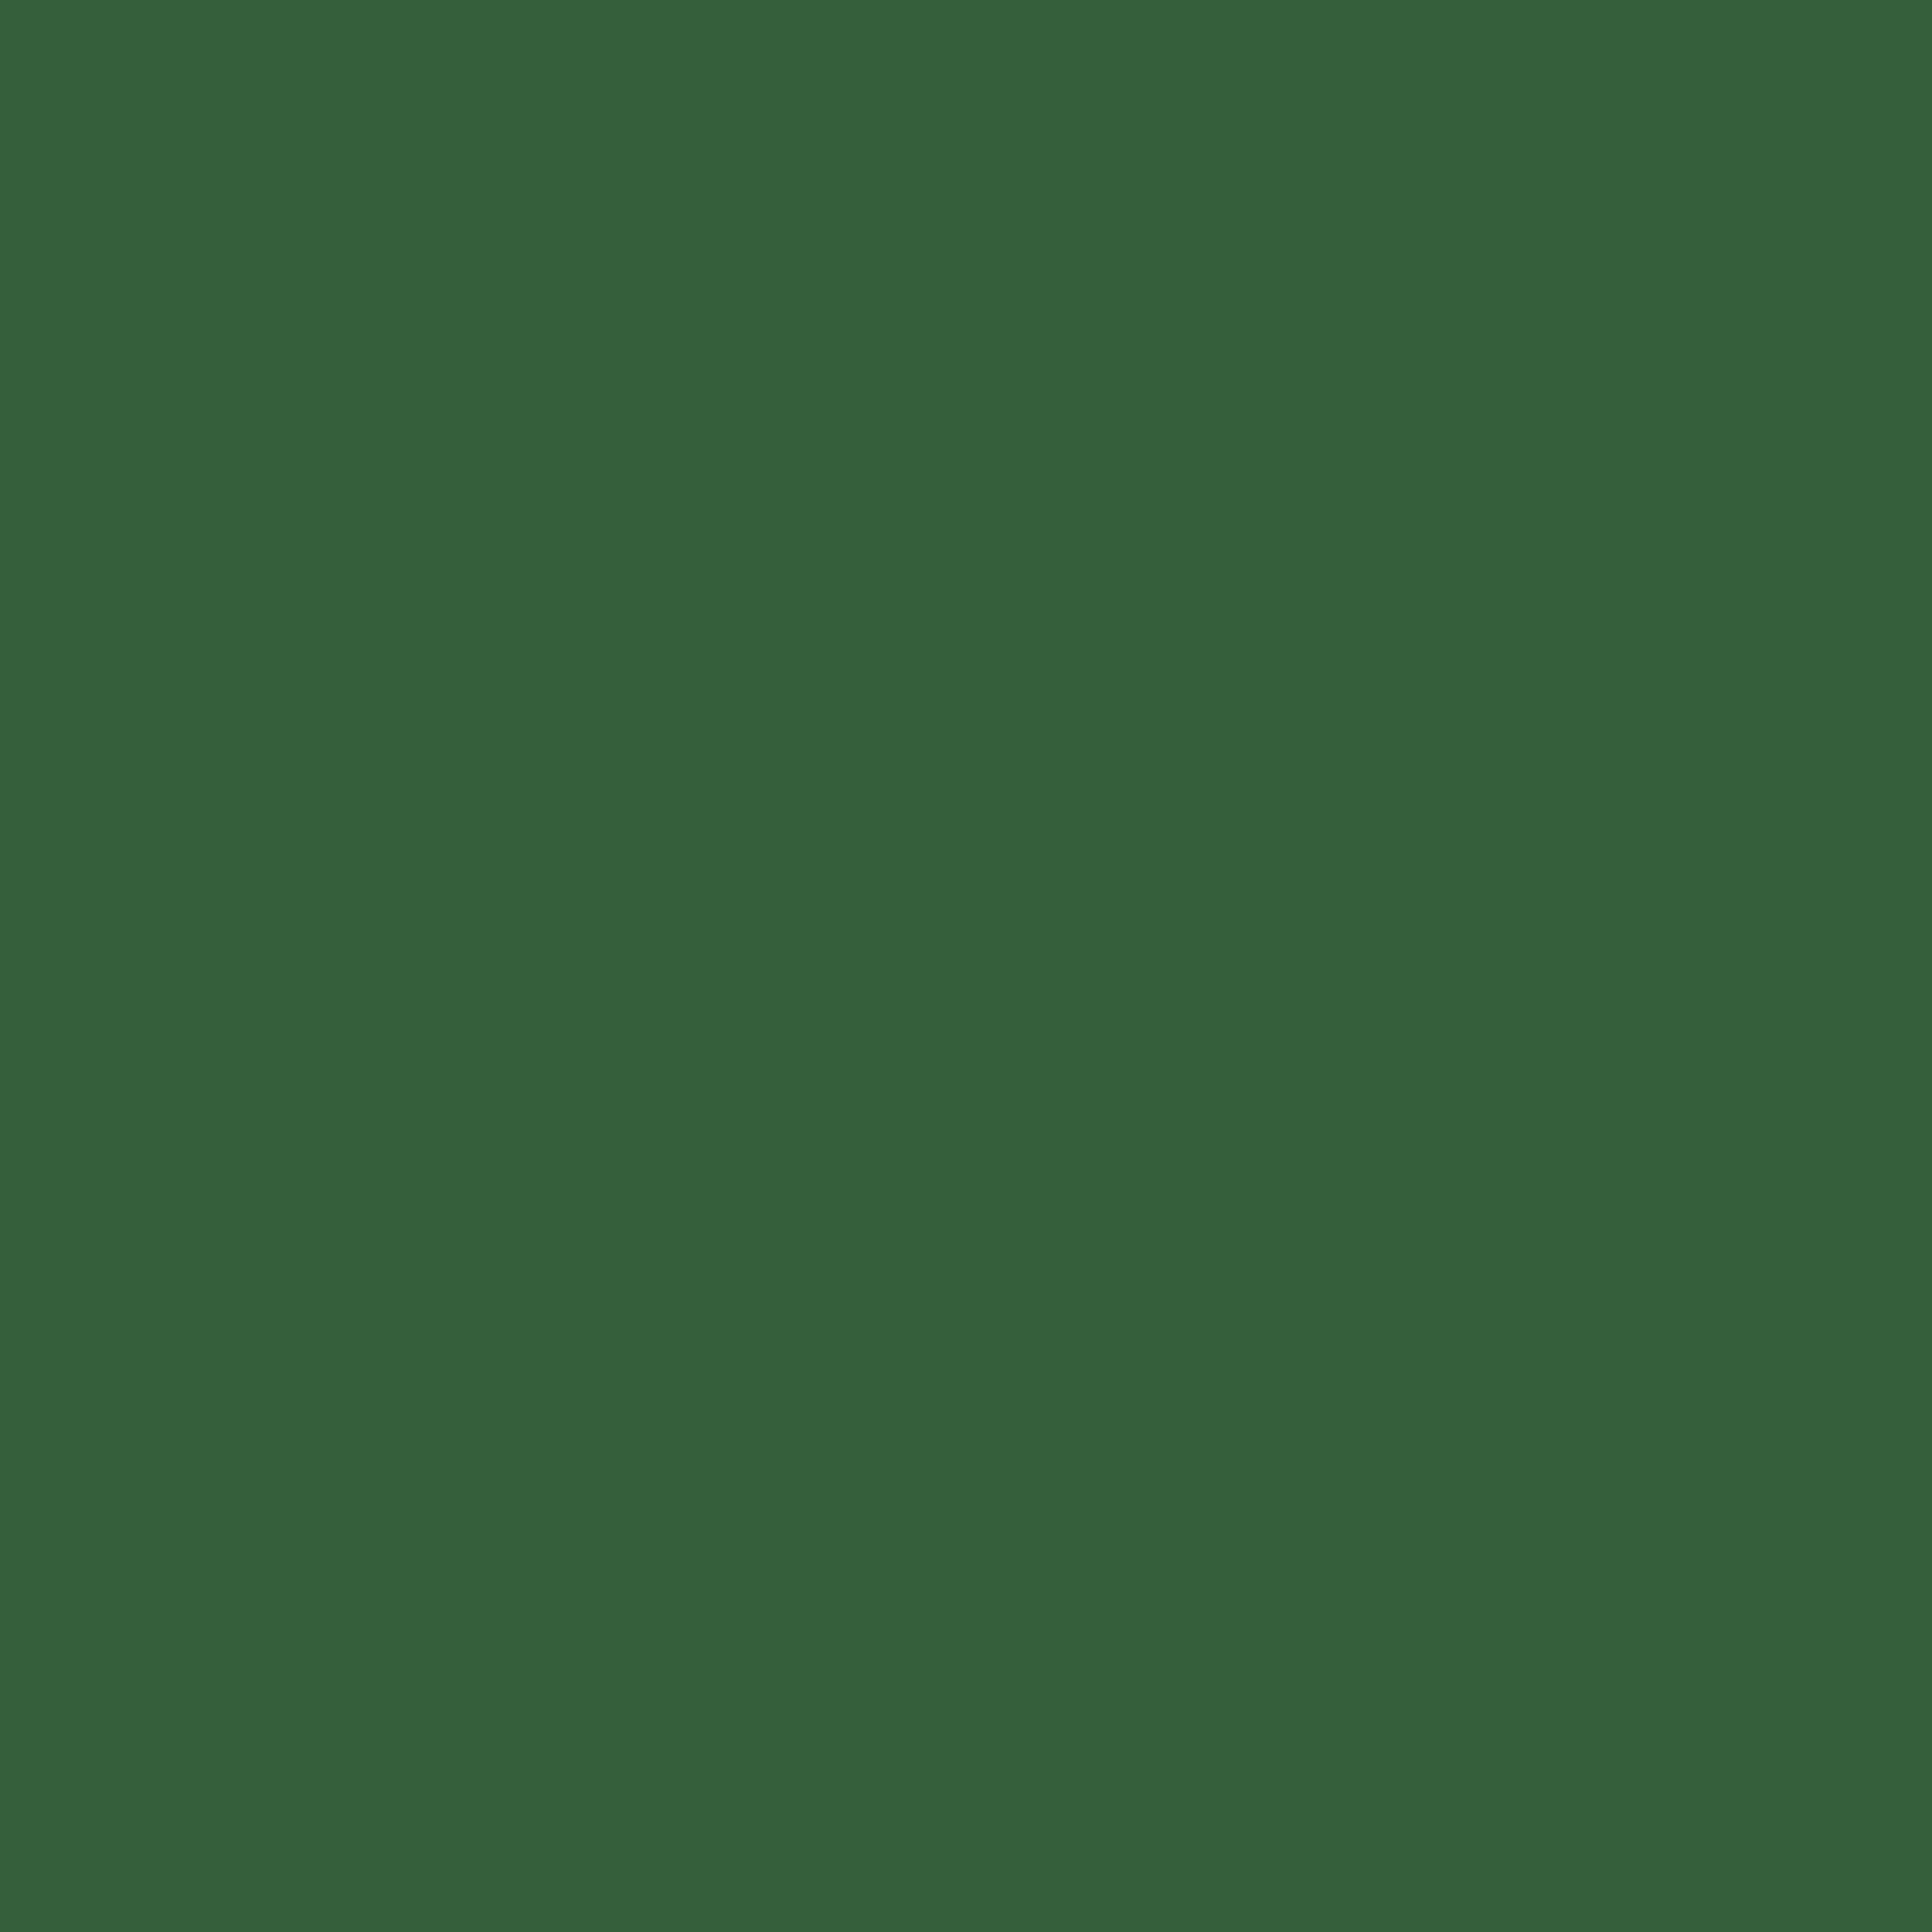 2048x2048 Deep Moss Green Solid Color Background